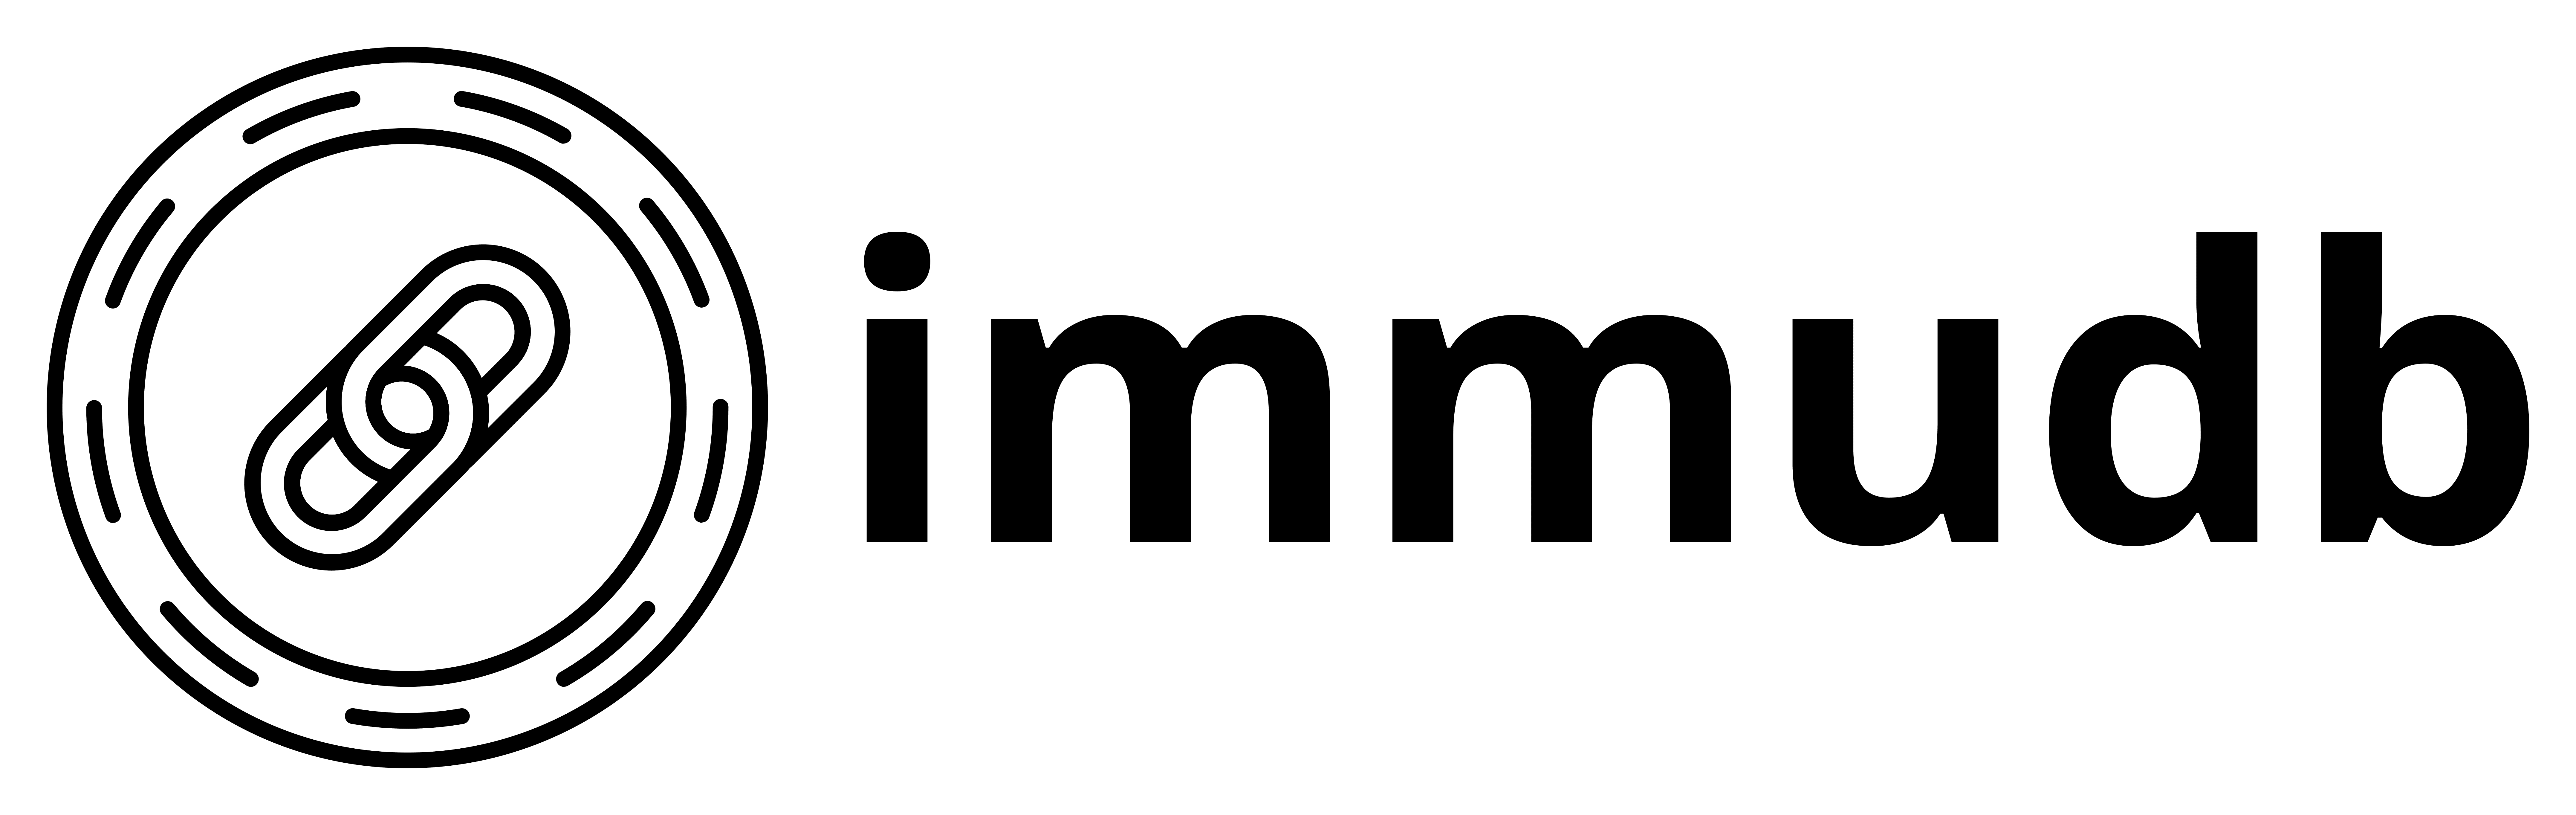 immudb - The lightweight, high-speed immutable database